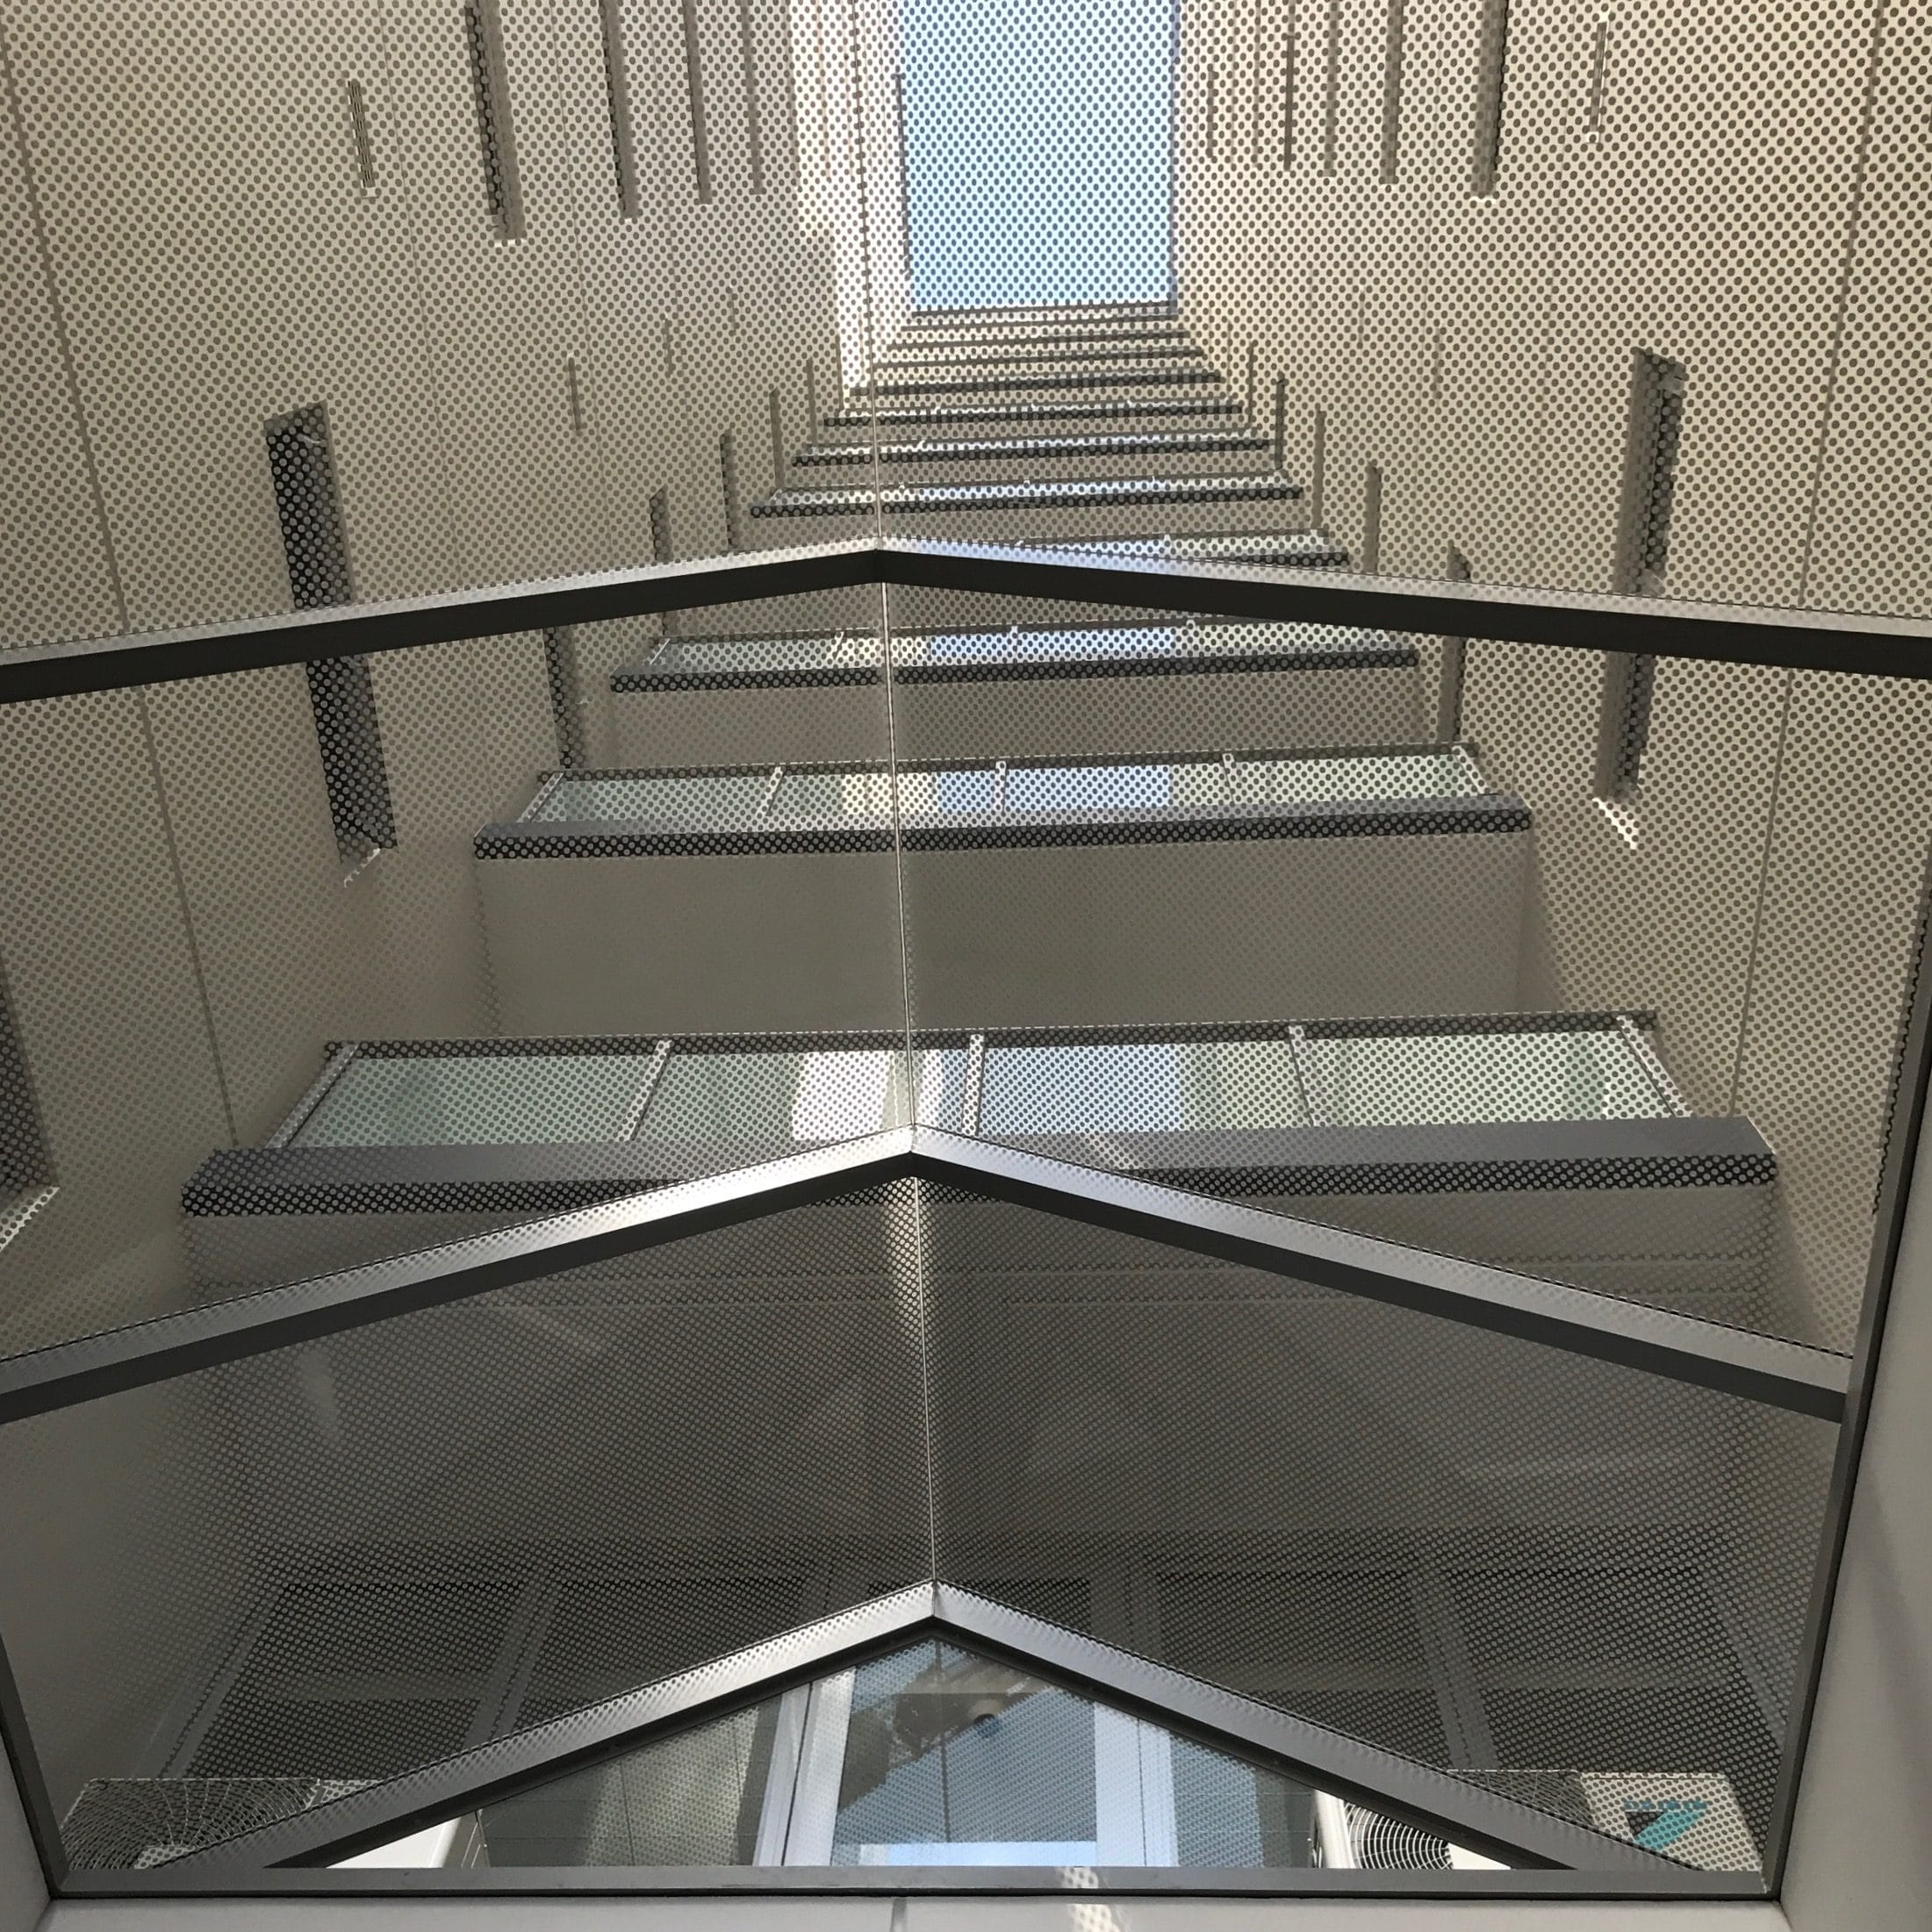 Glass printed canopy with white dots to provide transparency yet shading in Sydney apartments